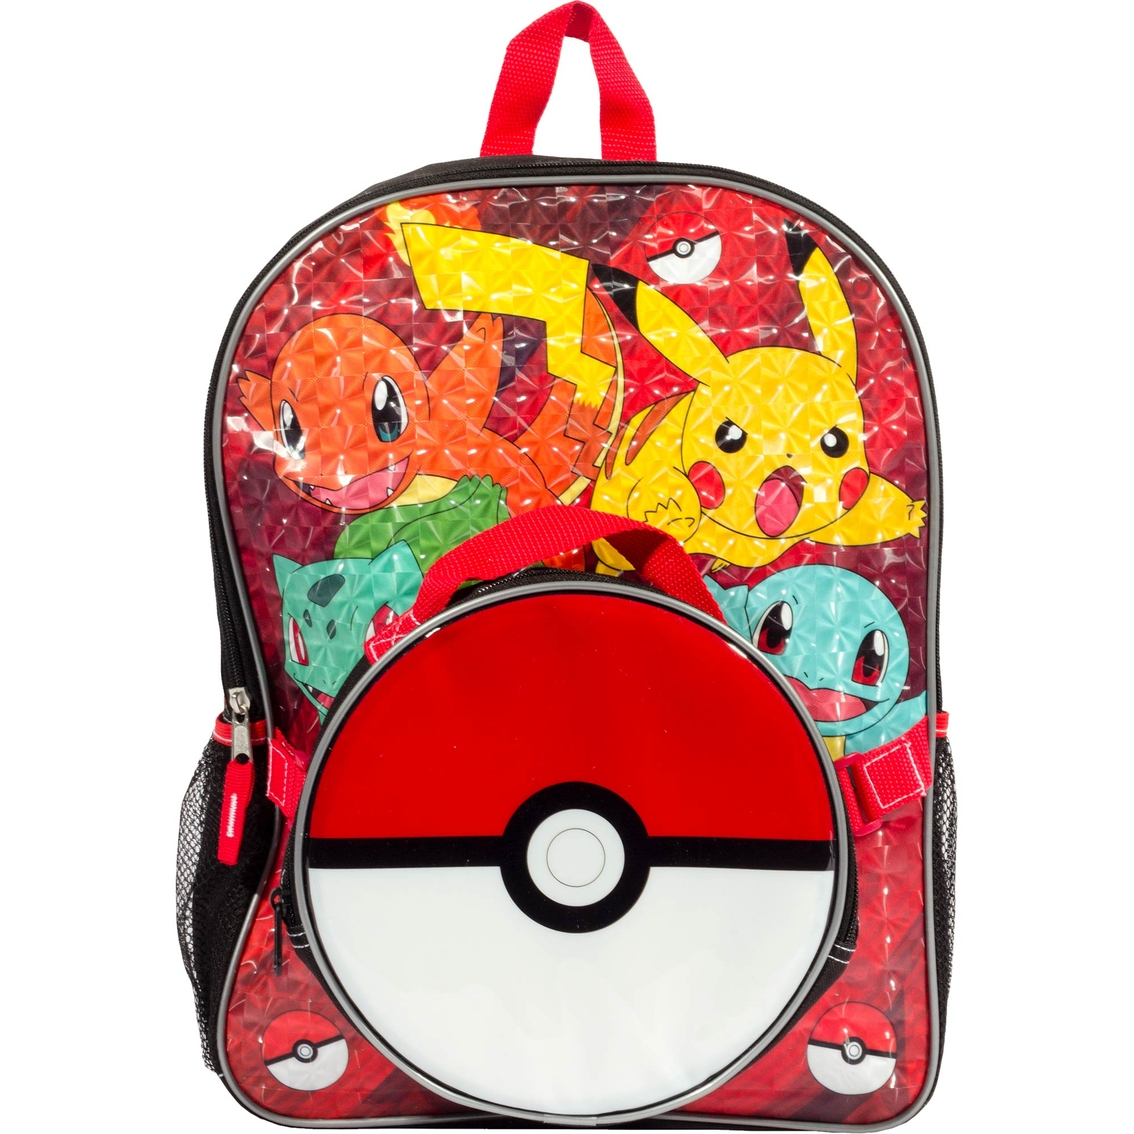 Nintendo Pokemon Backpack With Lunch Kit  d0f76f81e069f